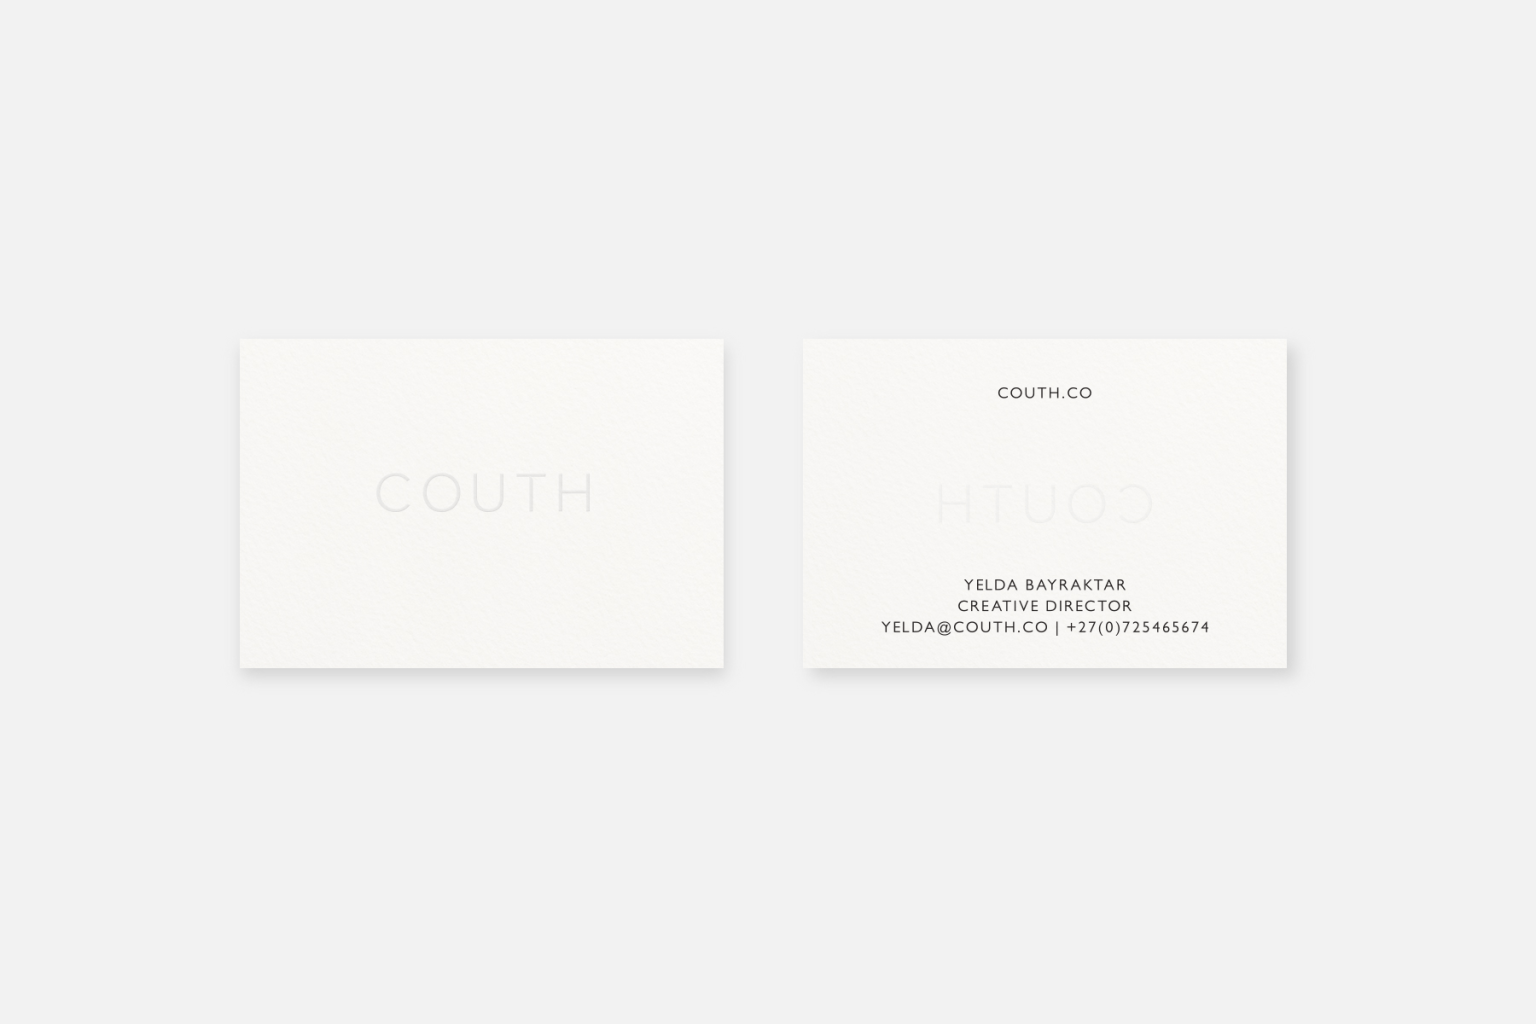 COUTH